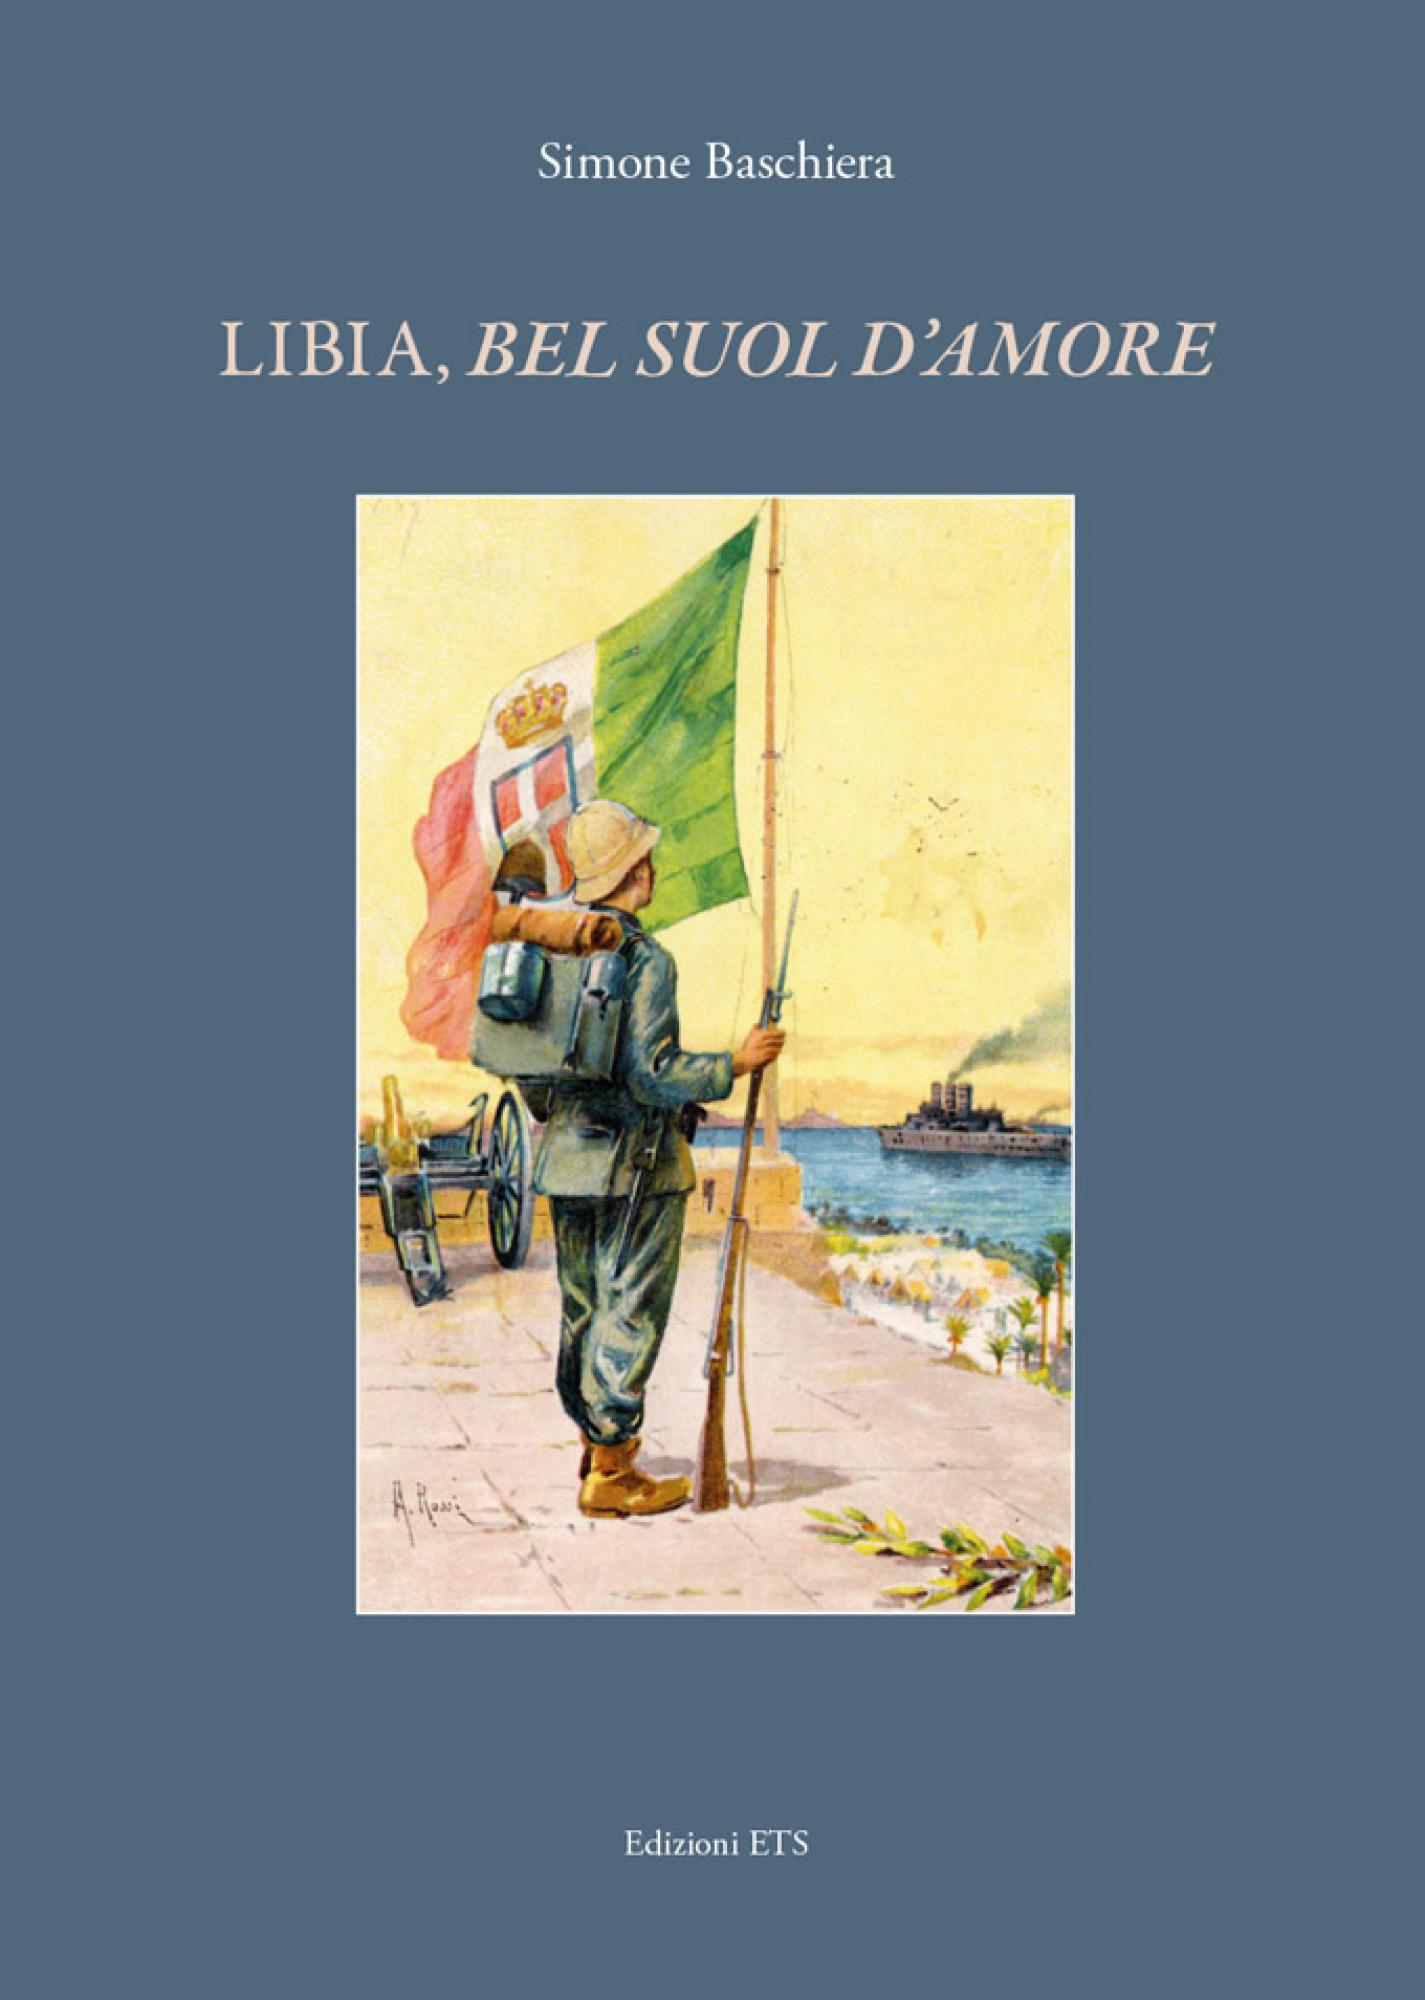 Libia, bel suol d'amore